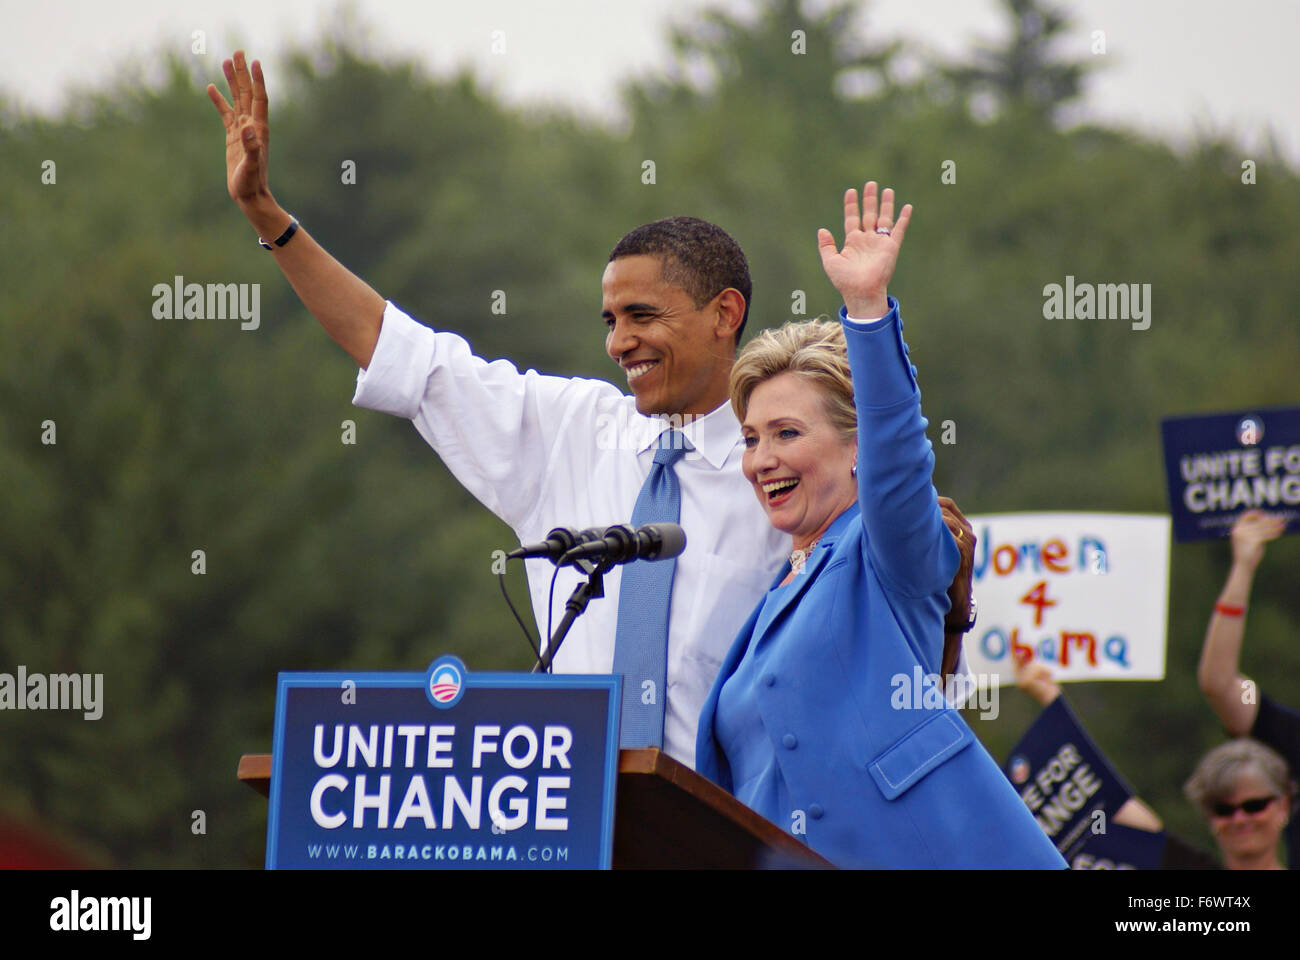 Senator Hillary Rodham Clinton campaigns together with Democratic Presidential candidate Senator Barack Obama during - Stock Image